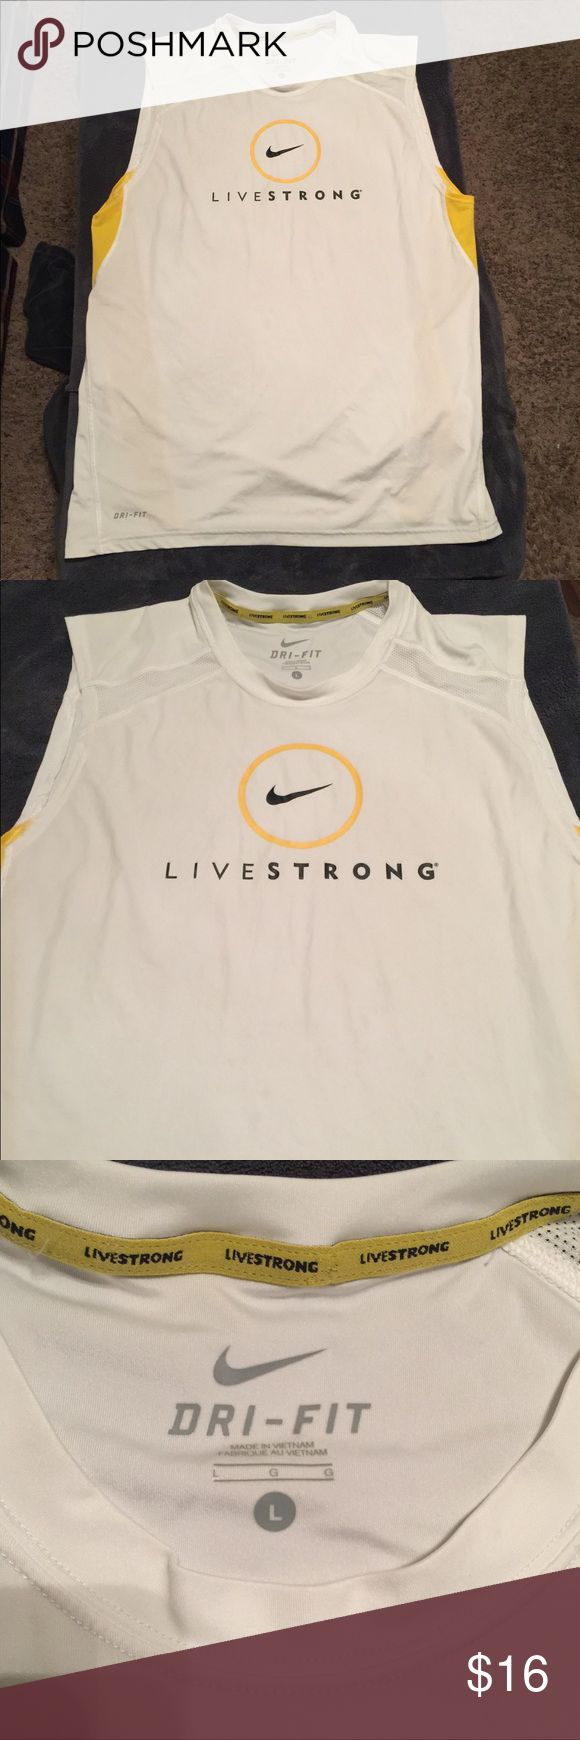 Nike Livestrong Tank Dri-Fit New without tag never worn Nike Livestrong Tank Size L Nike Shirts Tank Tops